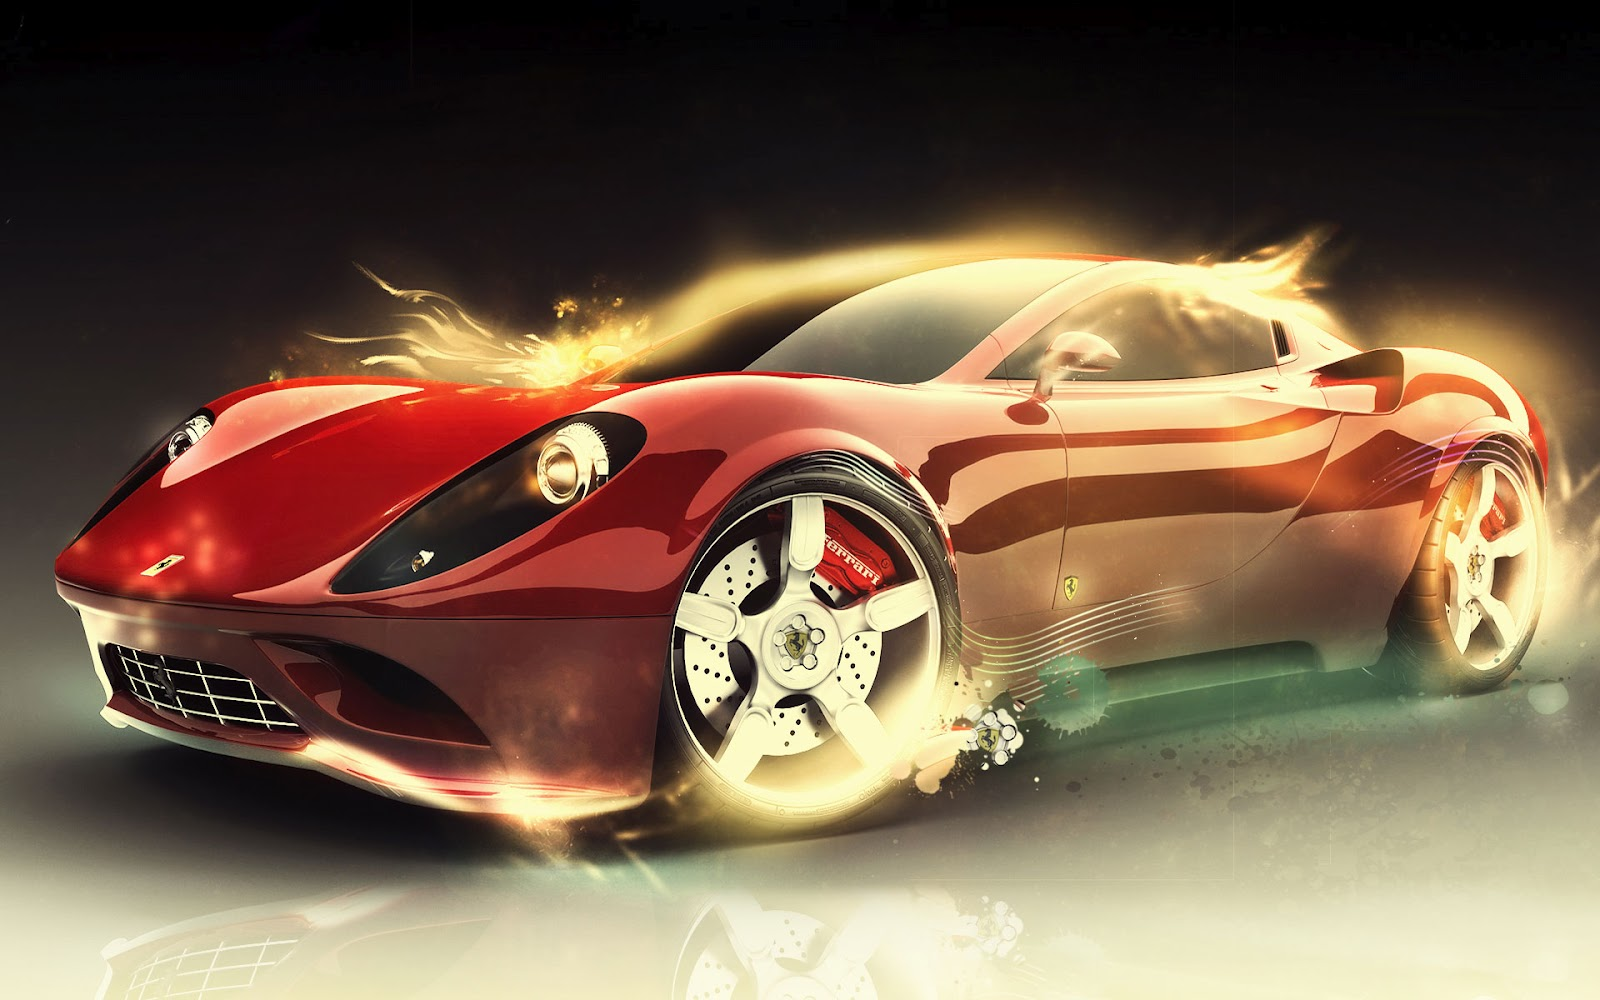 iWallpapers CARS WALLPAPERS DESKTOP HD 1600x1000